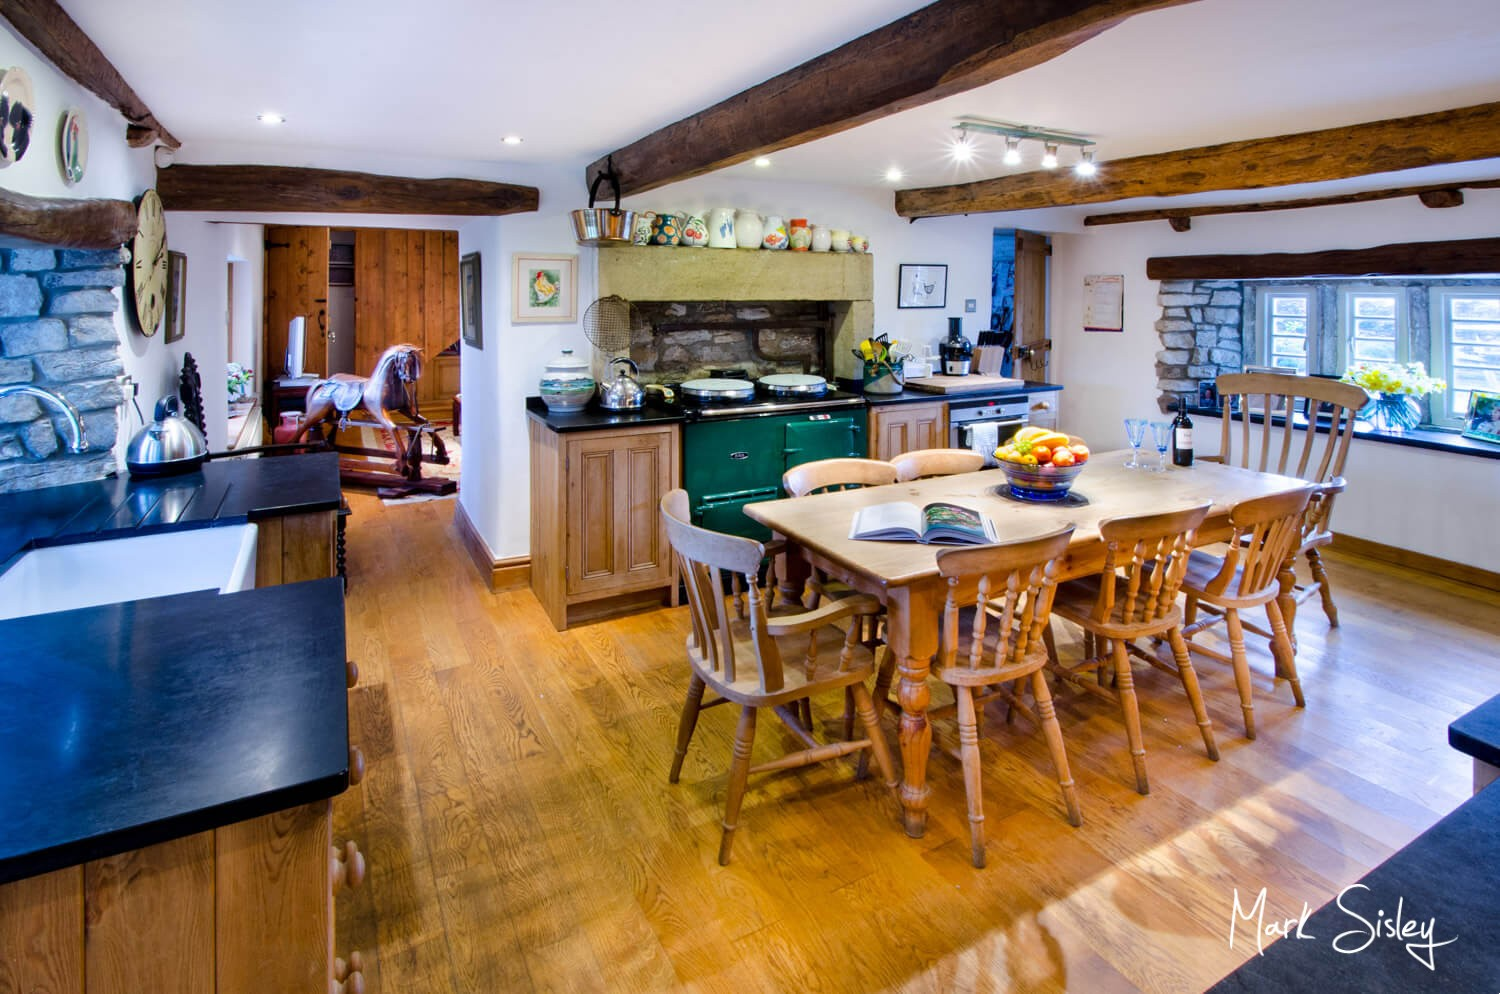 UK Holiday home interiors & exteriors photography - Yorkshire Dales